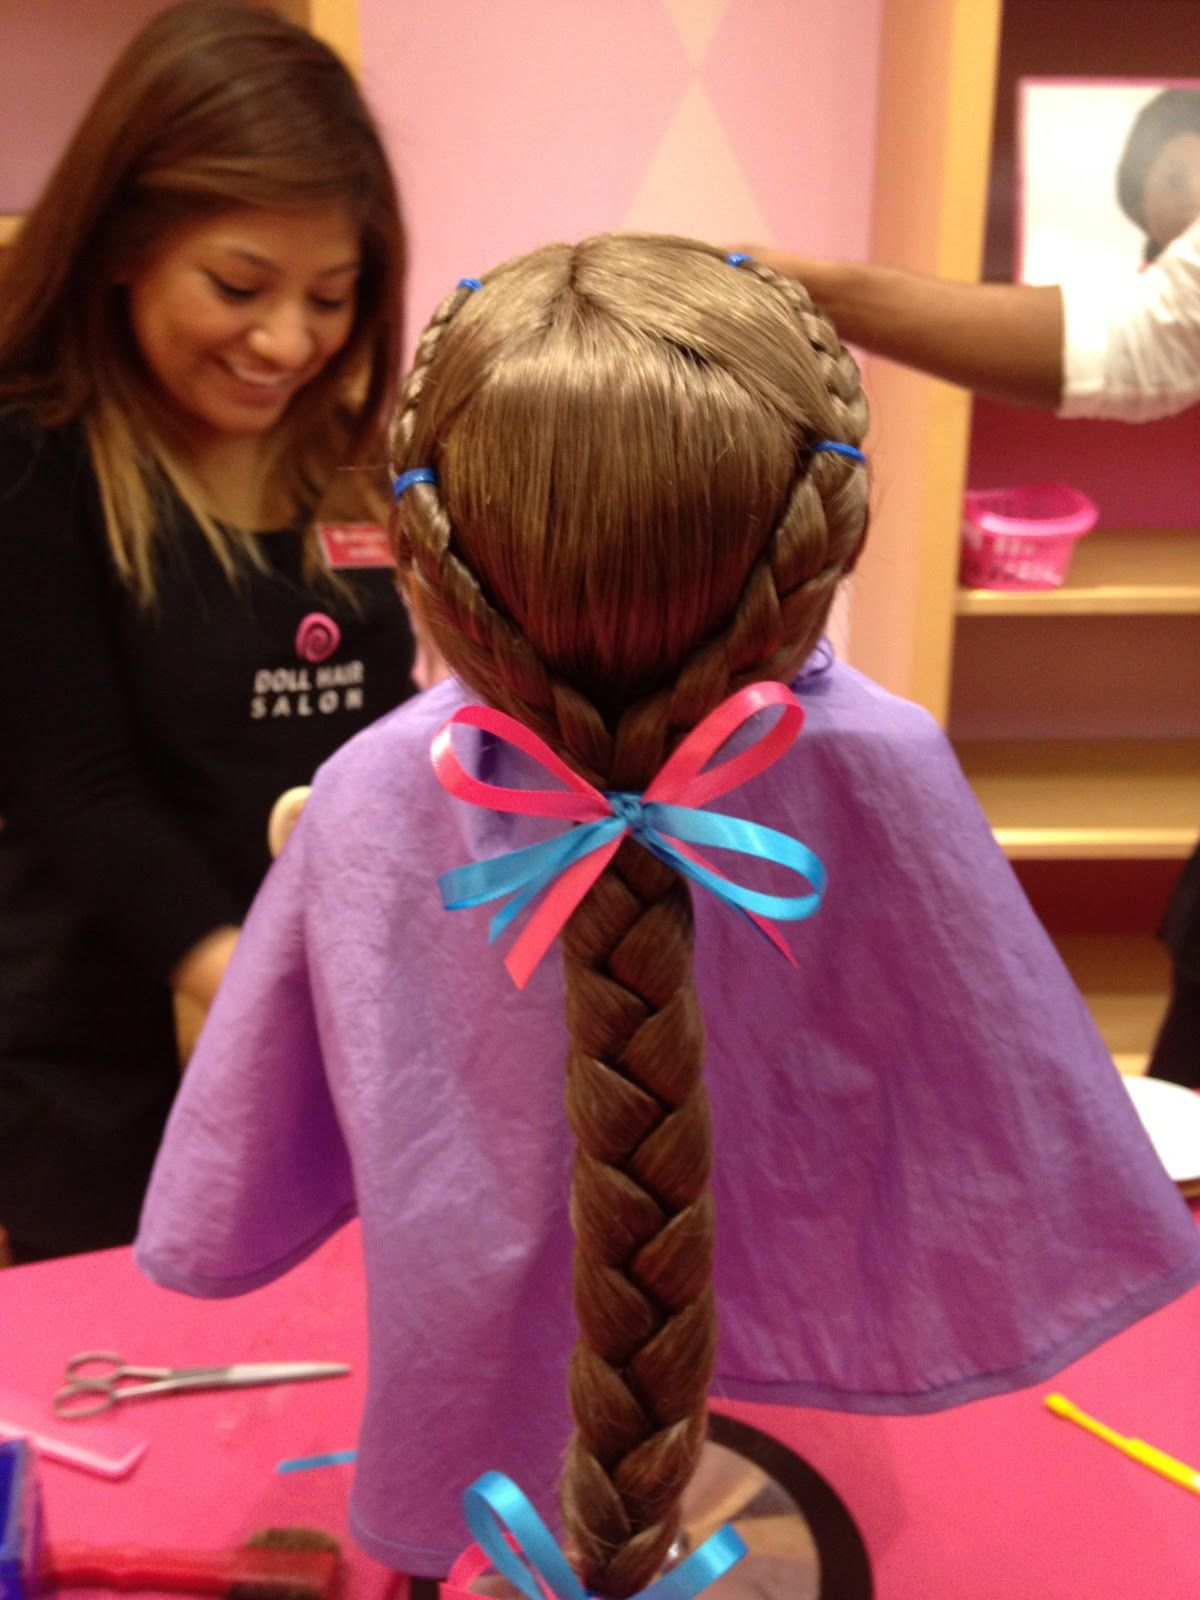 Outstanding Doll Hairstyles American Girl Dolls And Girl Dolls On Pinterest Short Hairstyles Gunalazisus